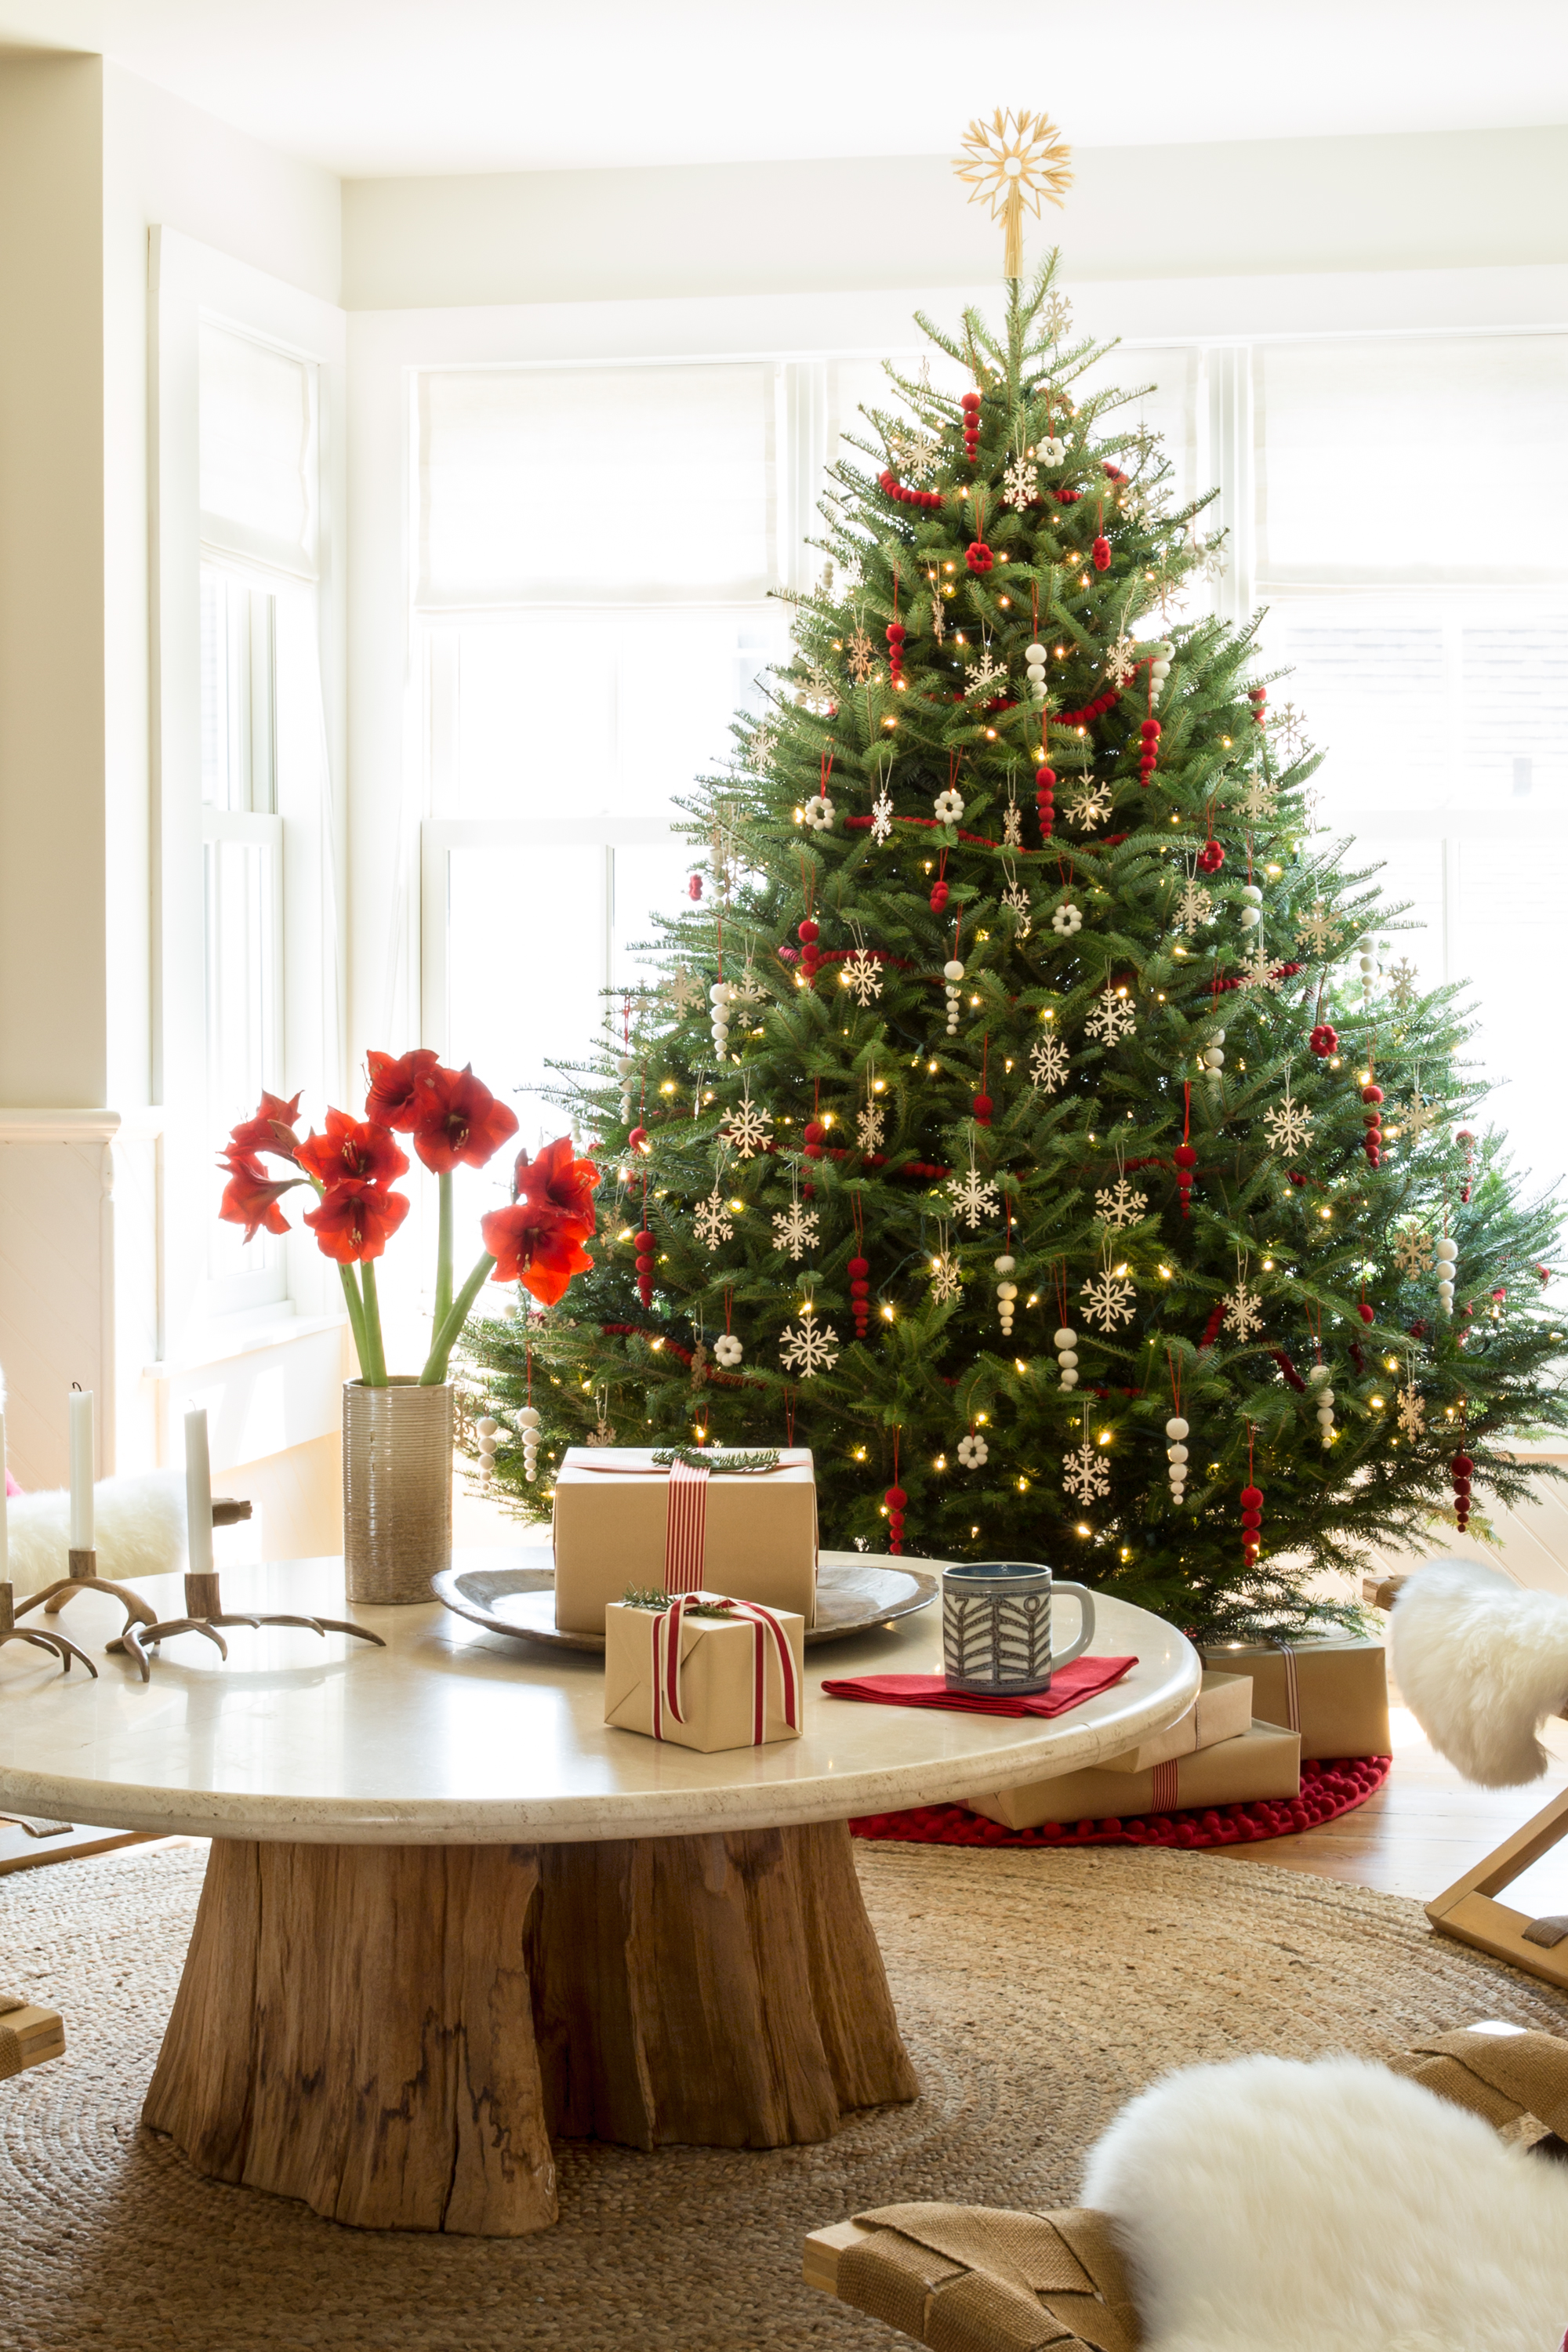 Excellent Corner Tabletop Christmas Decoration Featuring White Short ...